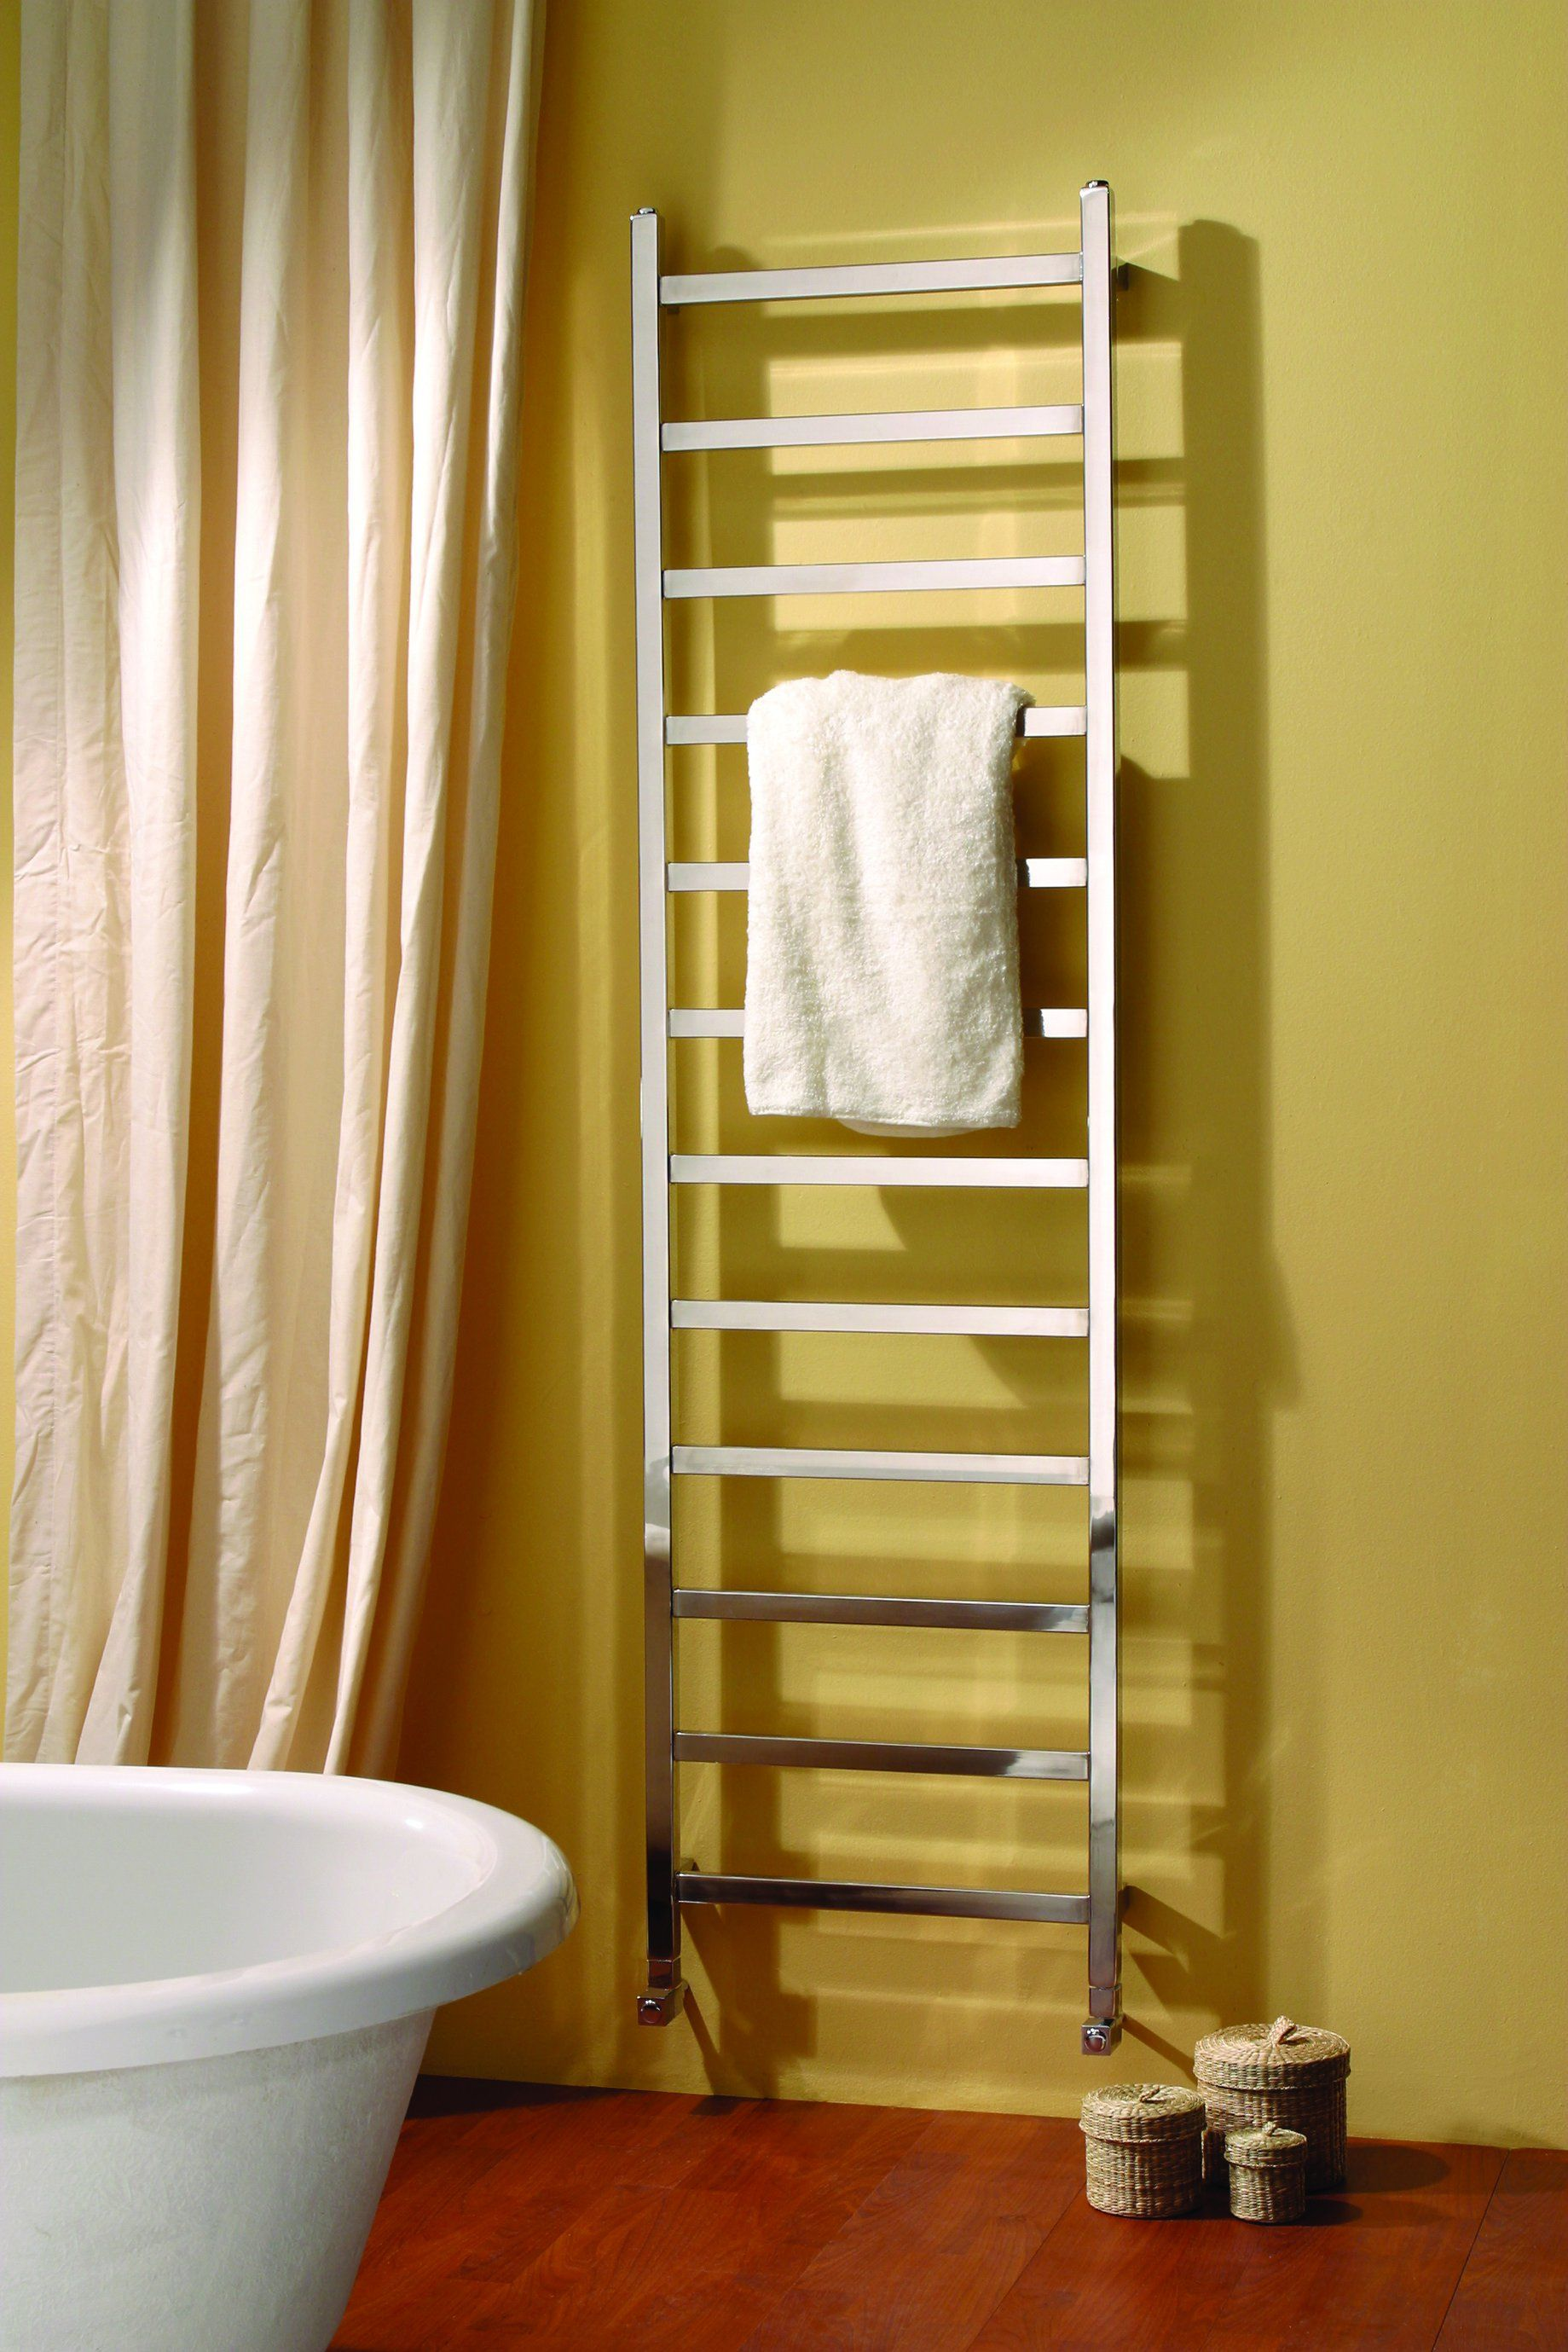 Mhs Climber Polished Stainless Steel Towel Railmhs Radiators Beauteous Designer Heated Towel Rails For Bathrooms Review